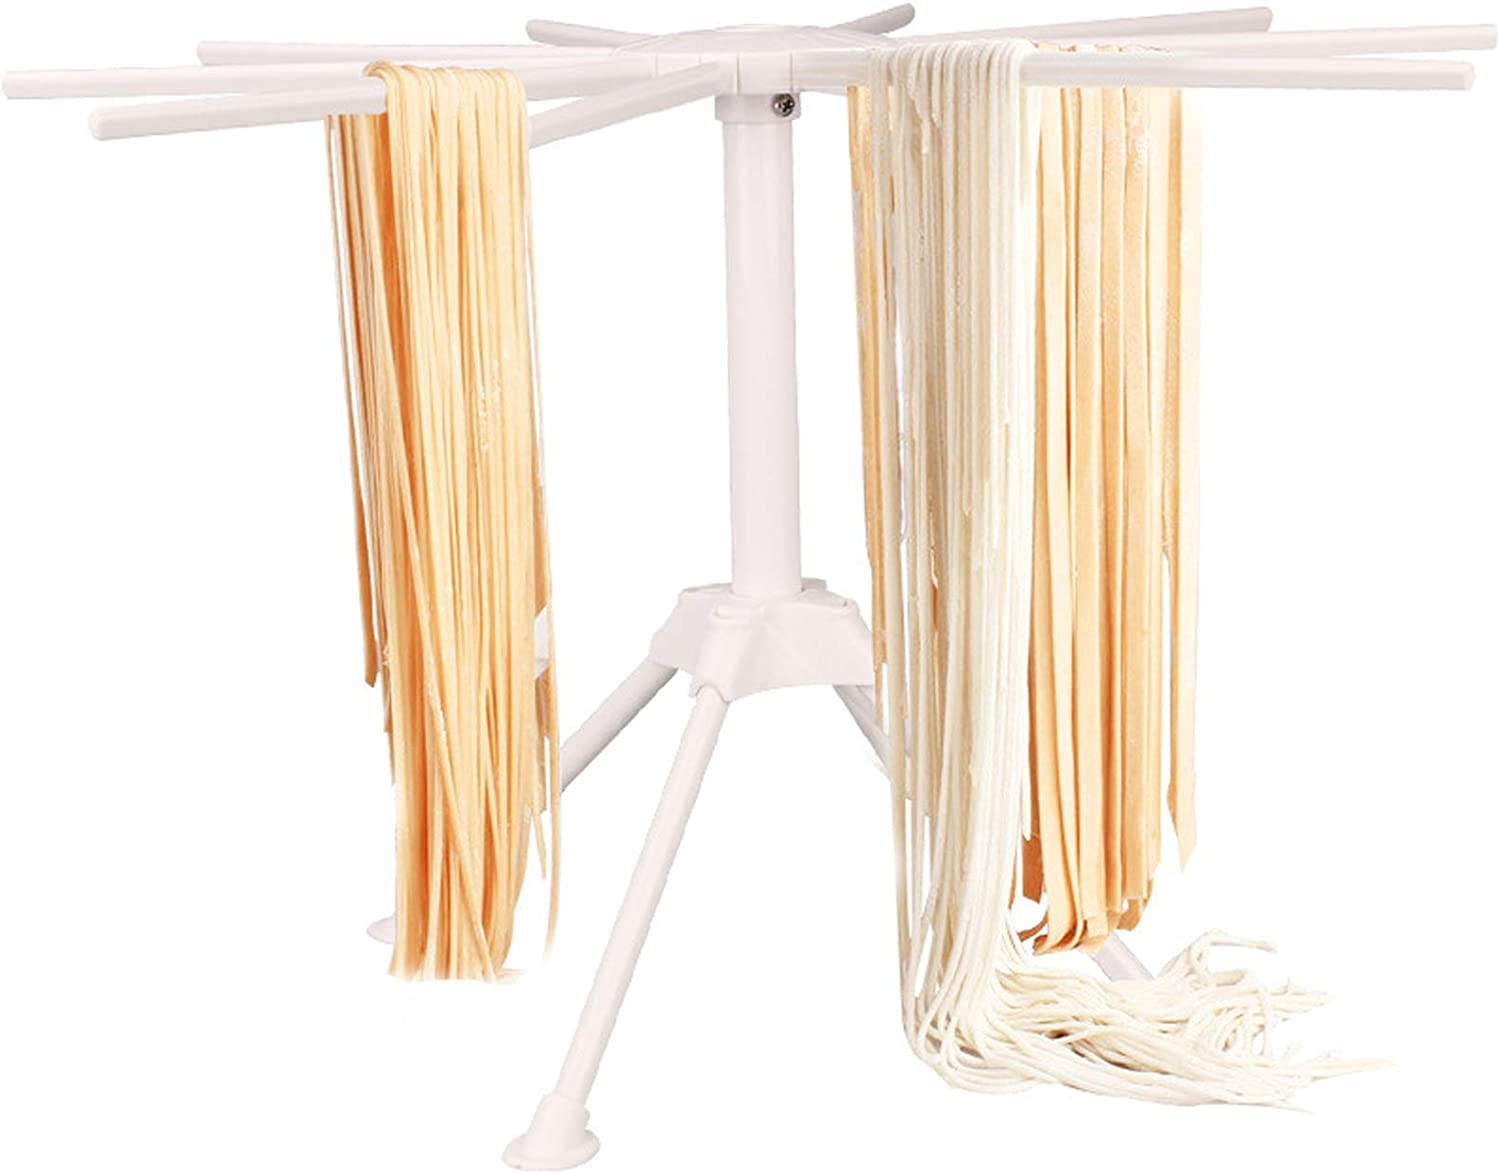 Pasta Drying Rack Noodle Stand with Collapsible Bar New life 10 Topics on TV Handles S